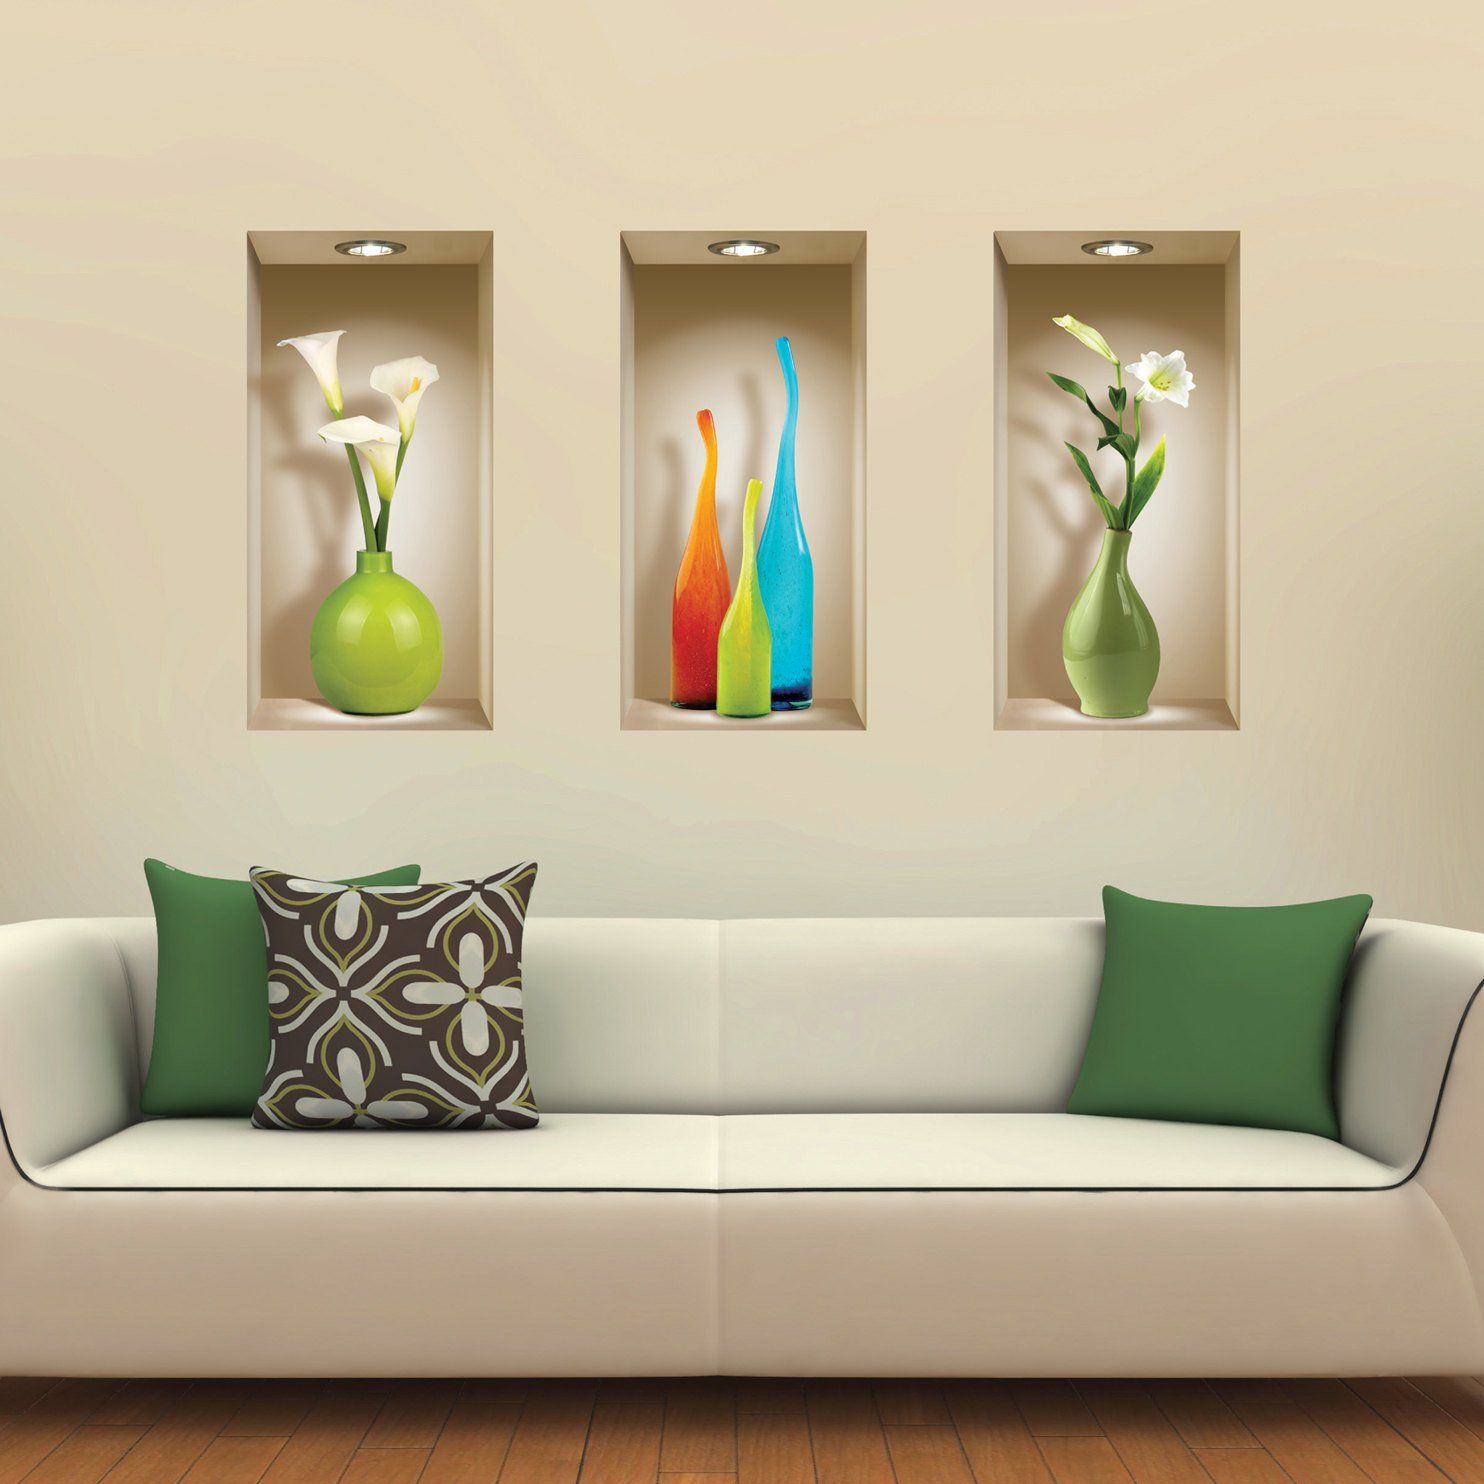 13 of the most stunning illuminated wall niches to enjoy daily set 3 art wall sticker decals picture removable home decor vinyl tile mural amipublicfo Gallery